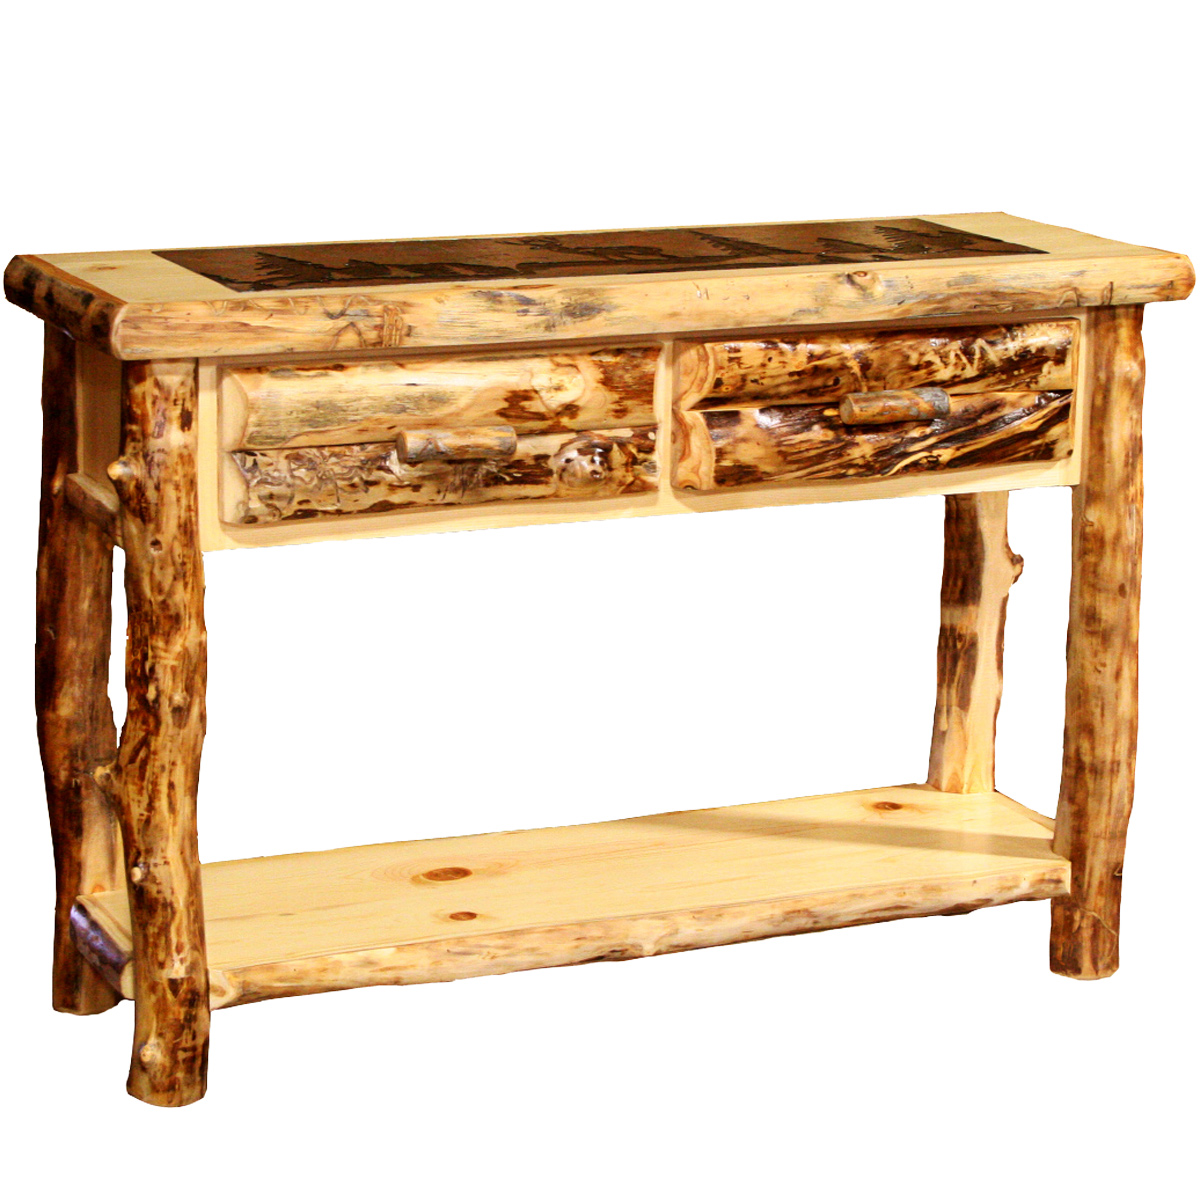 Aspen Sofa Table with Slate Top - Cowboy